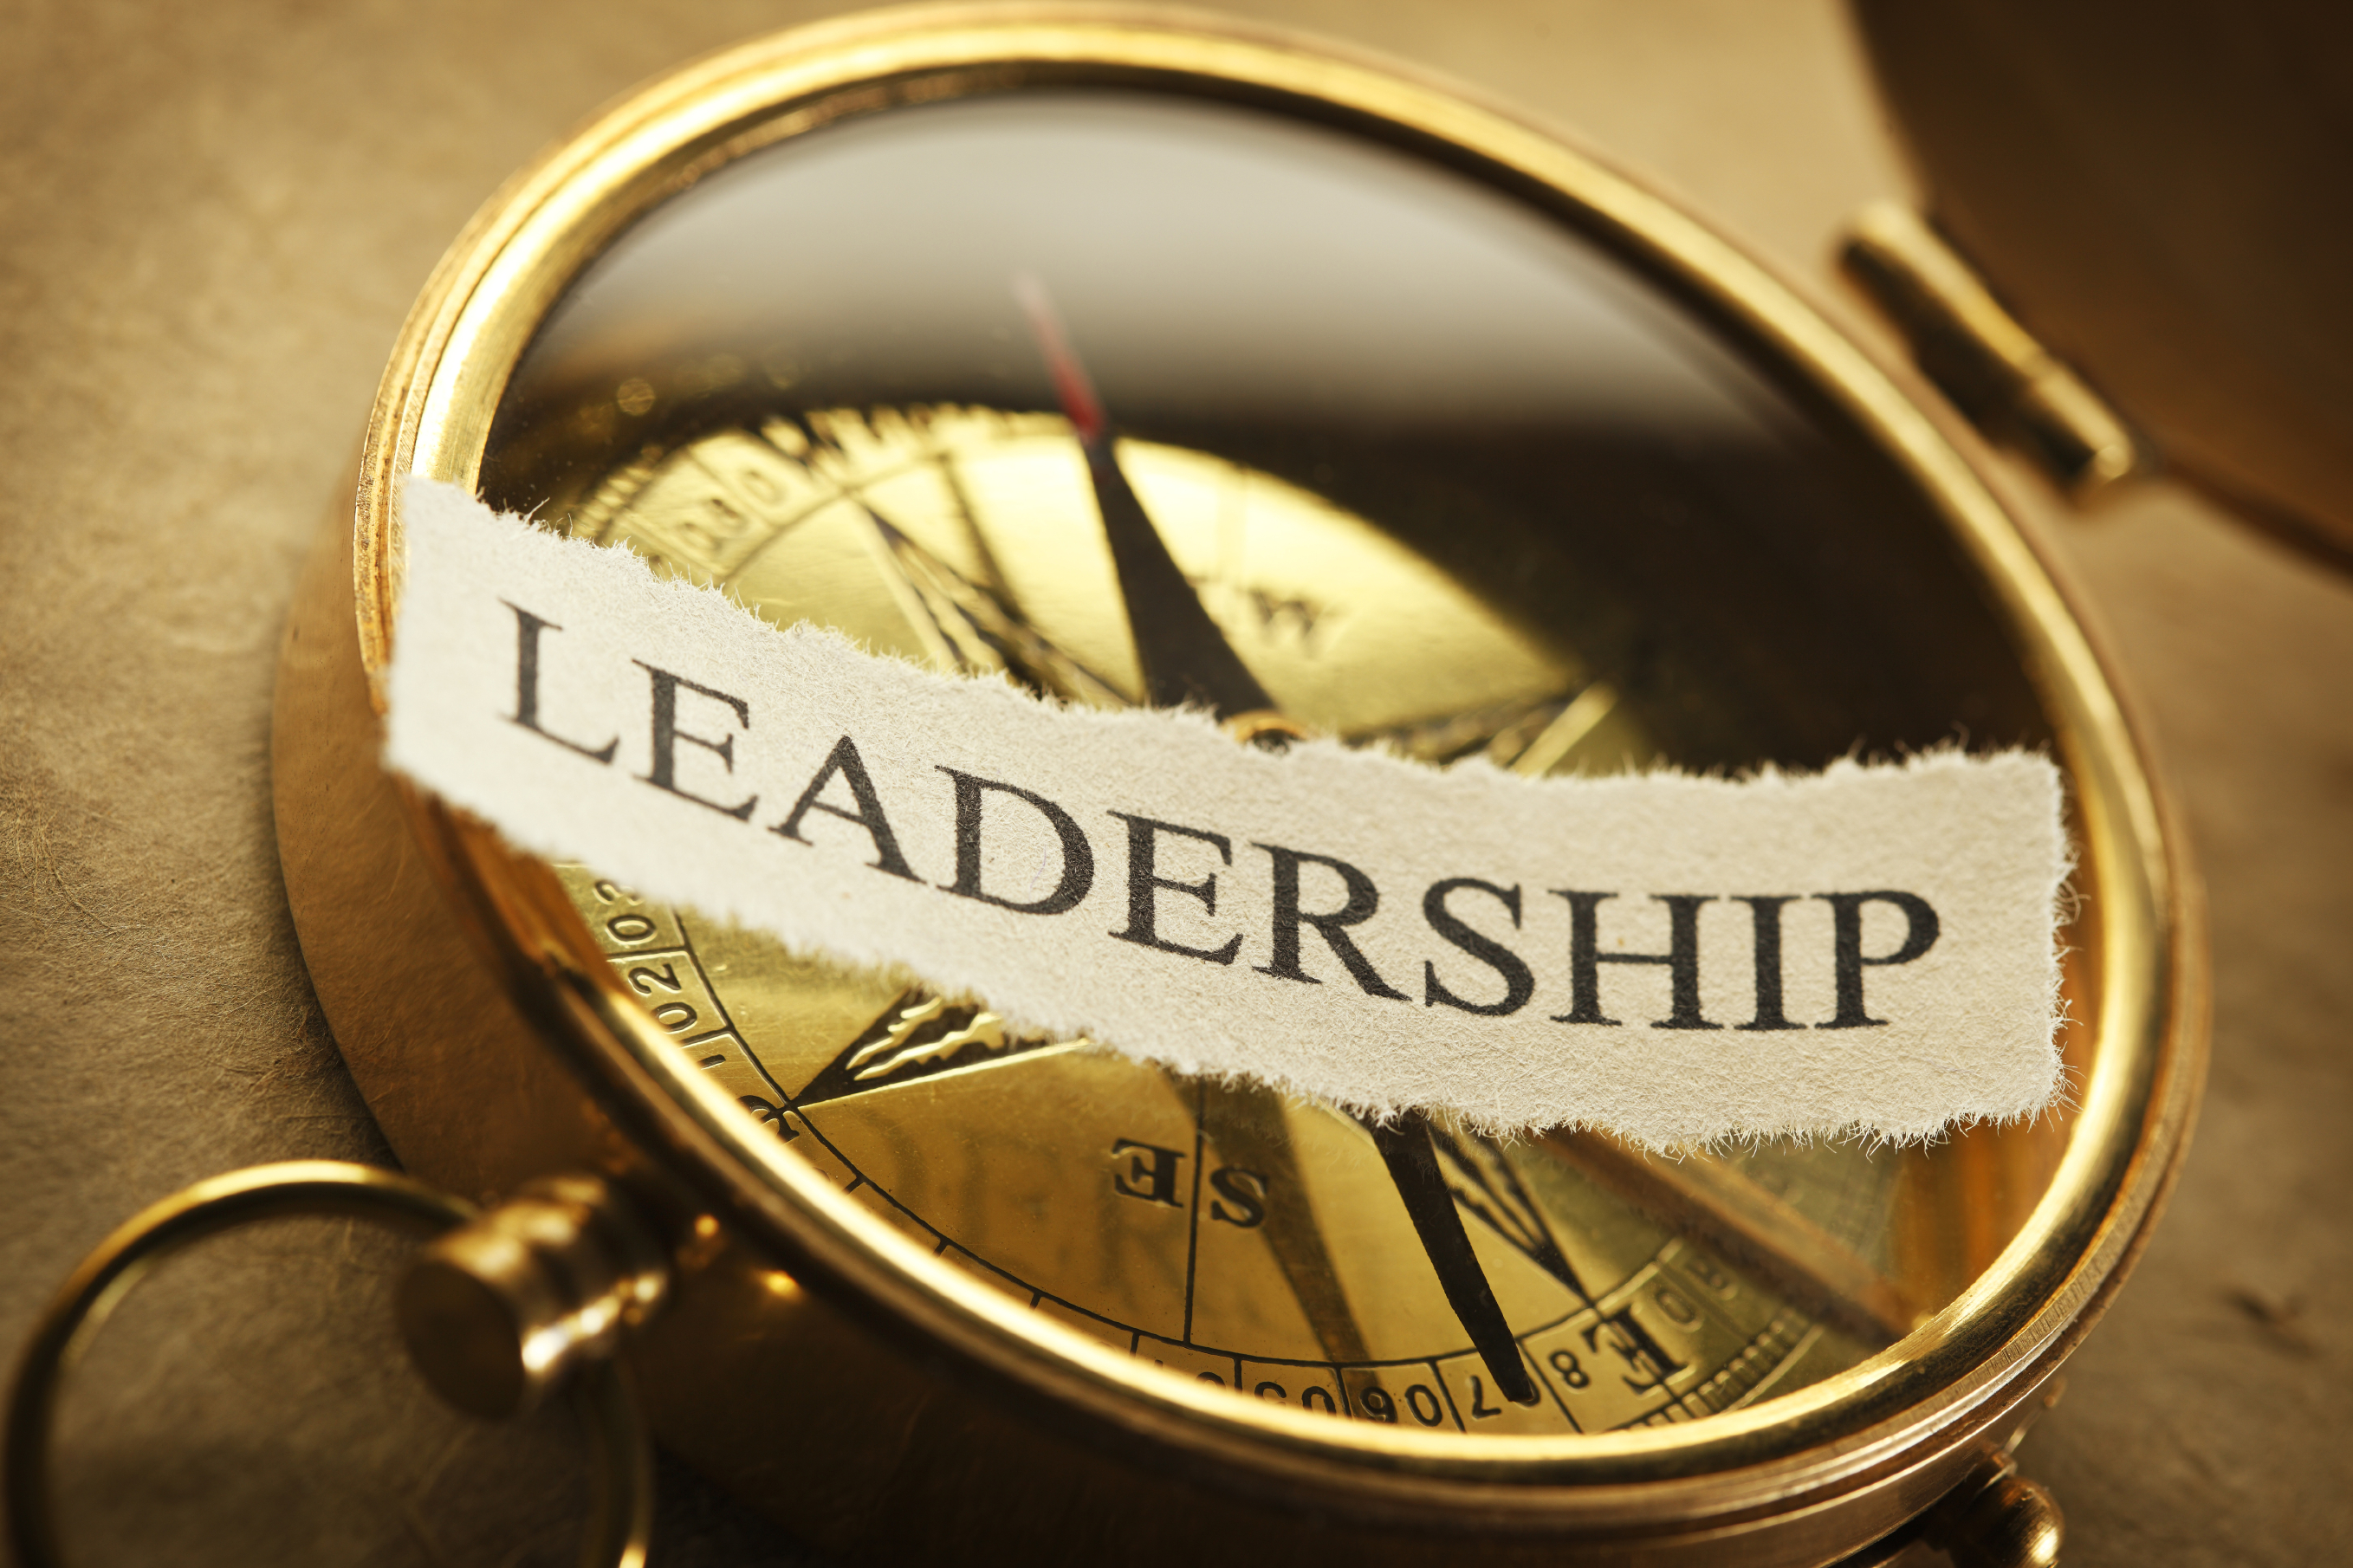 the need for leadership